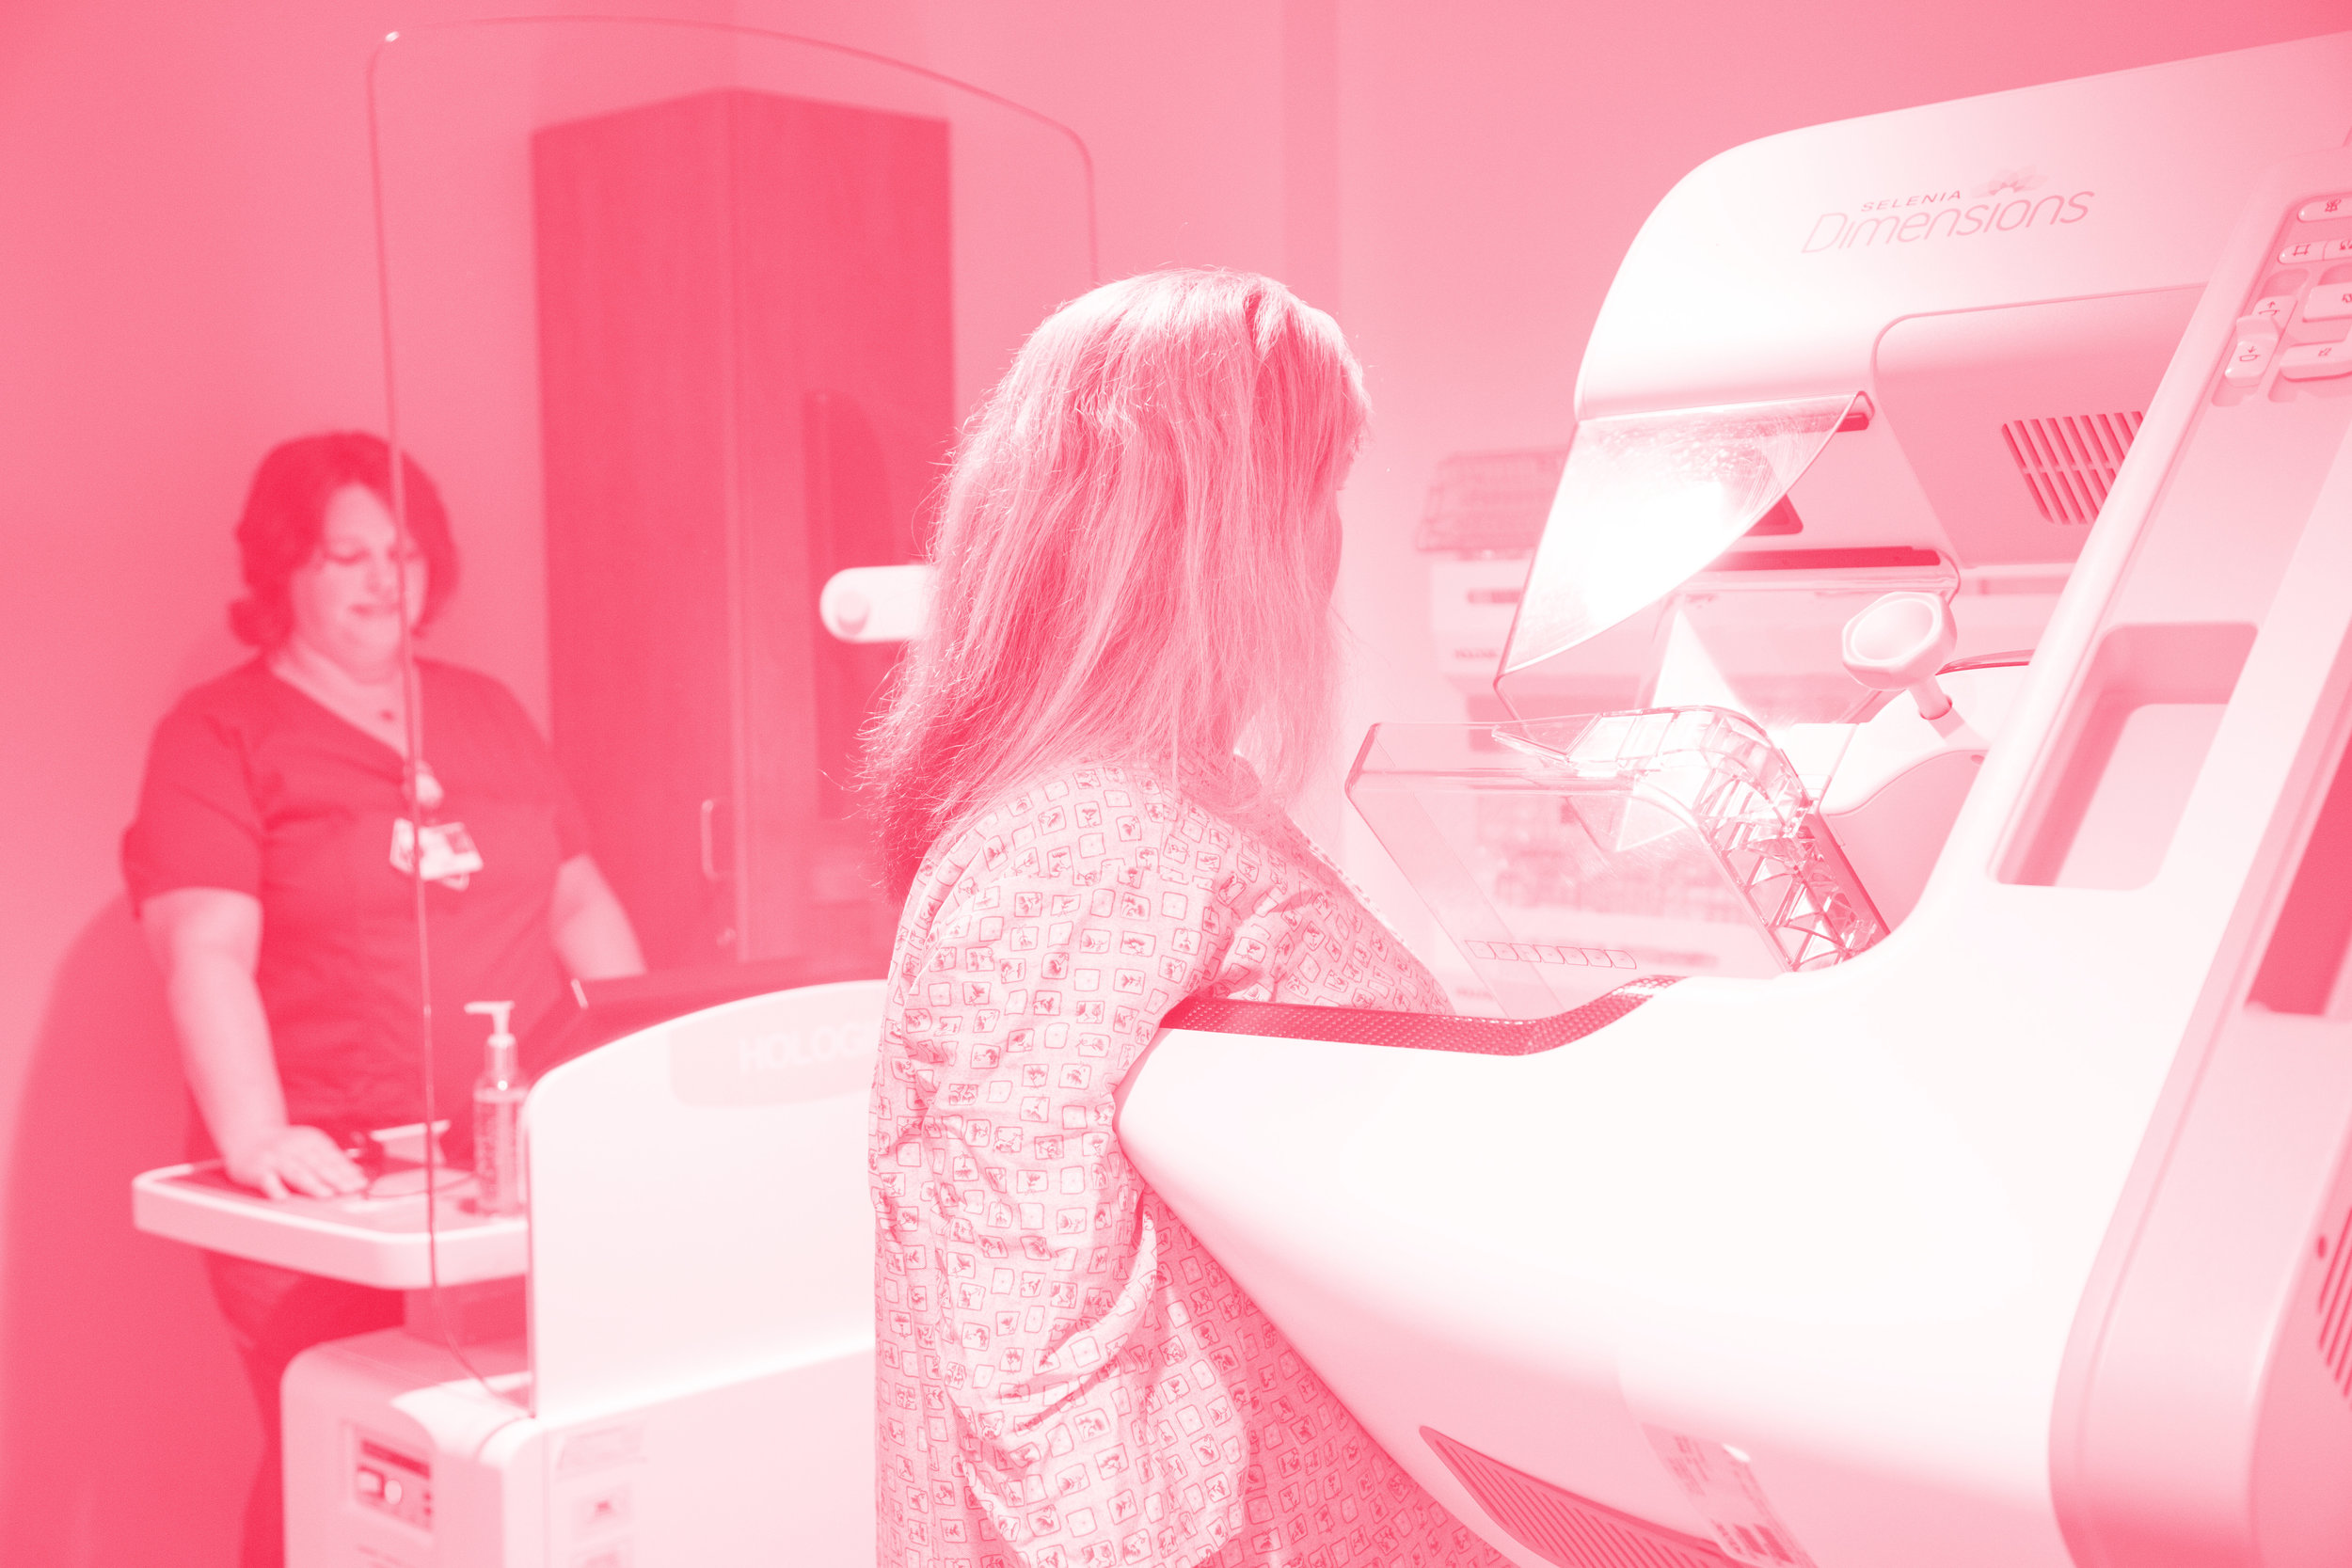 Radiology tech performs mammography scan on patient